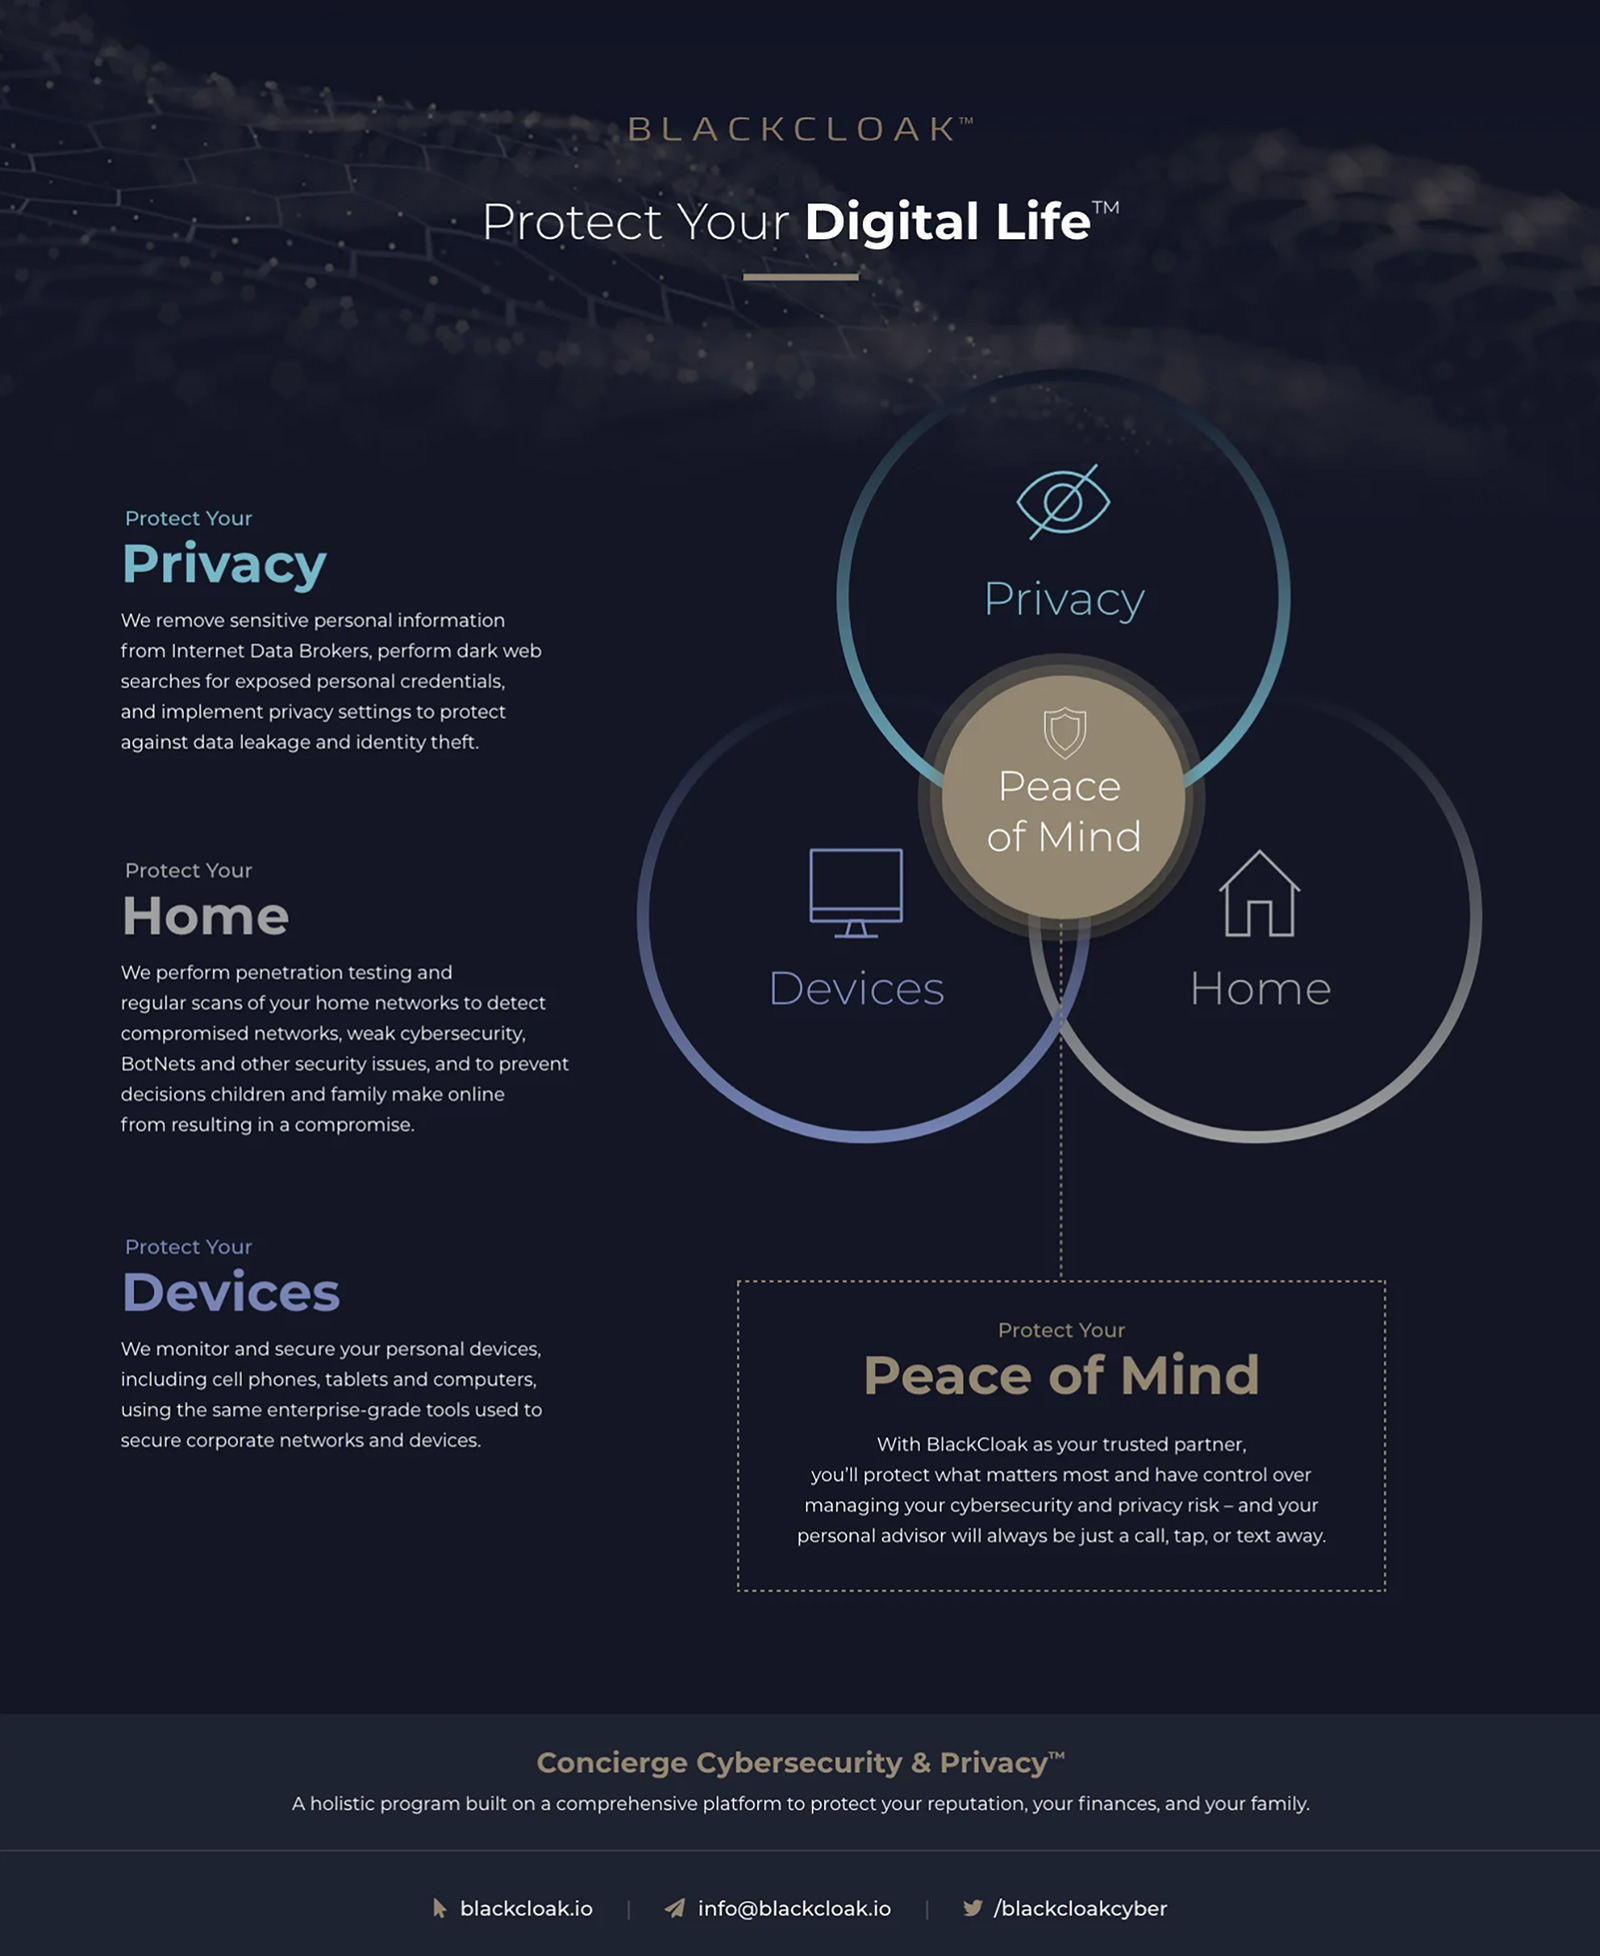 Protect-Your-Digital-Life-Image@2x